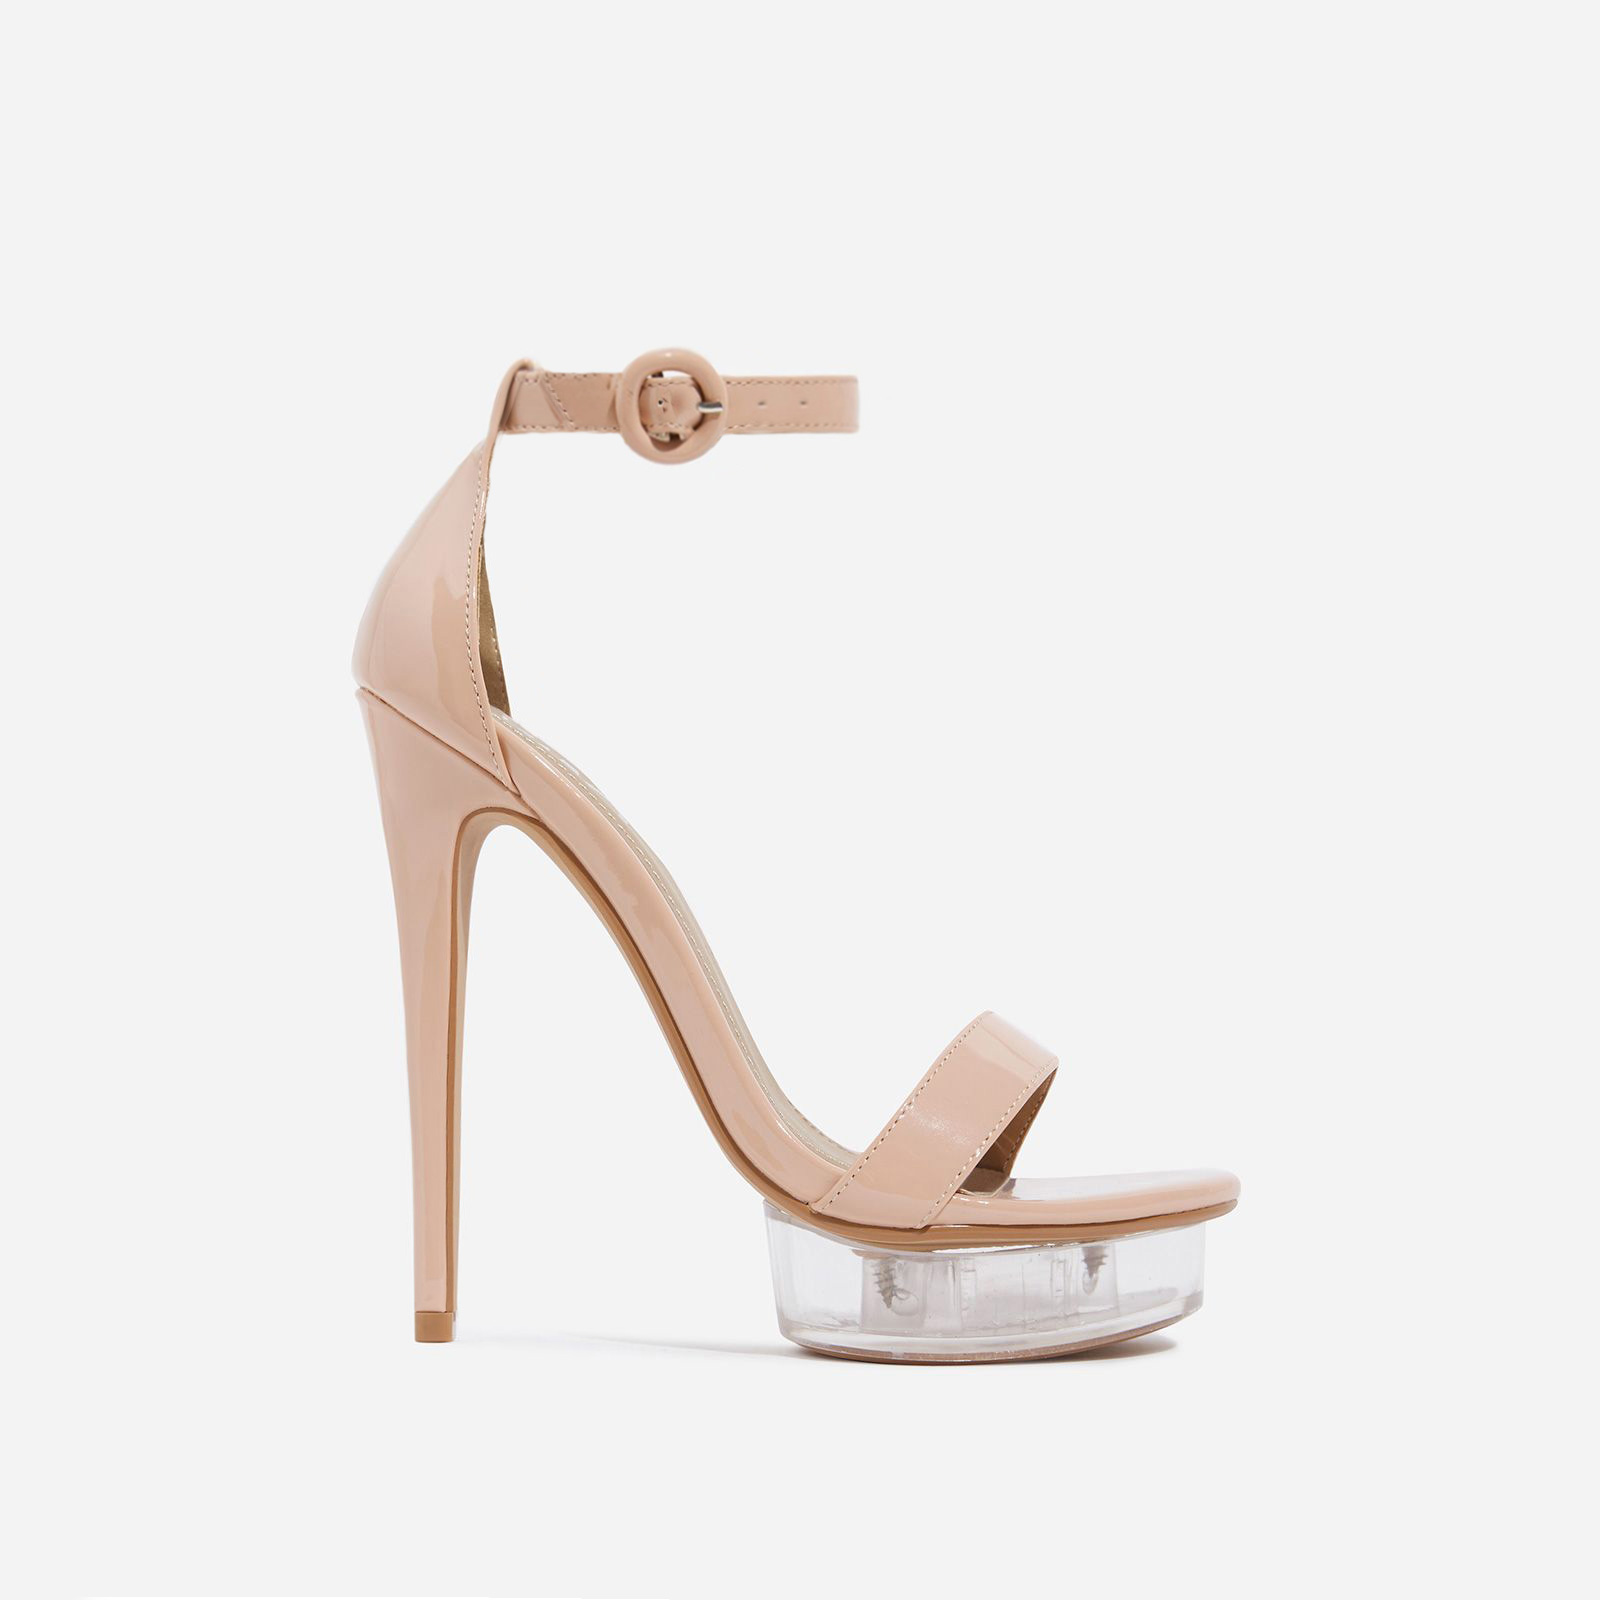 Passion Barely There Clear Perspex Platform Heel In Nude Patent